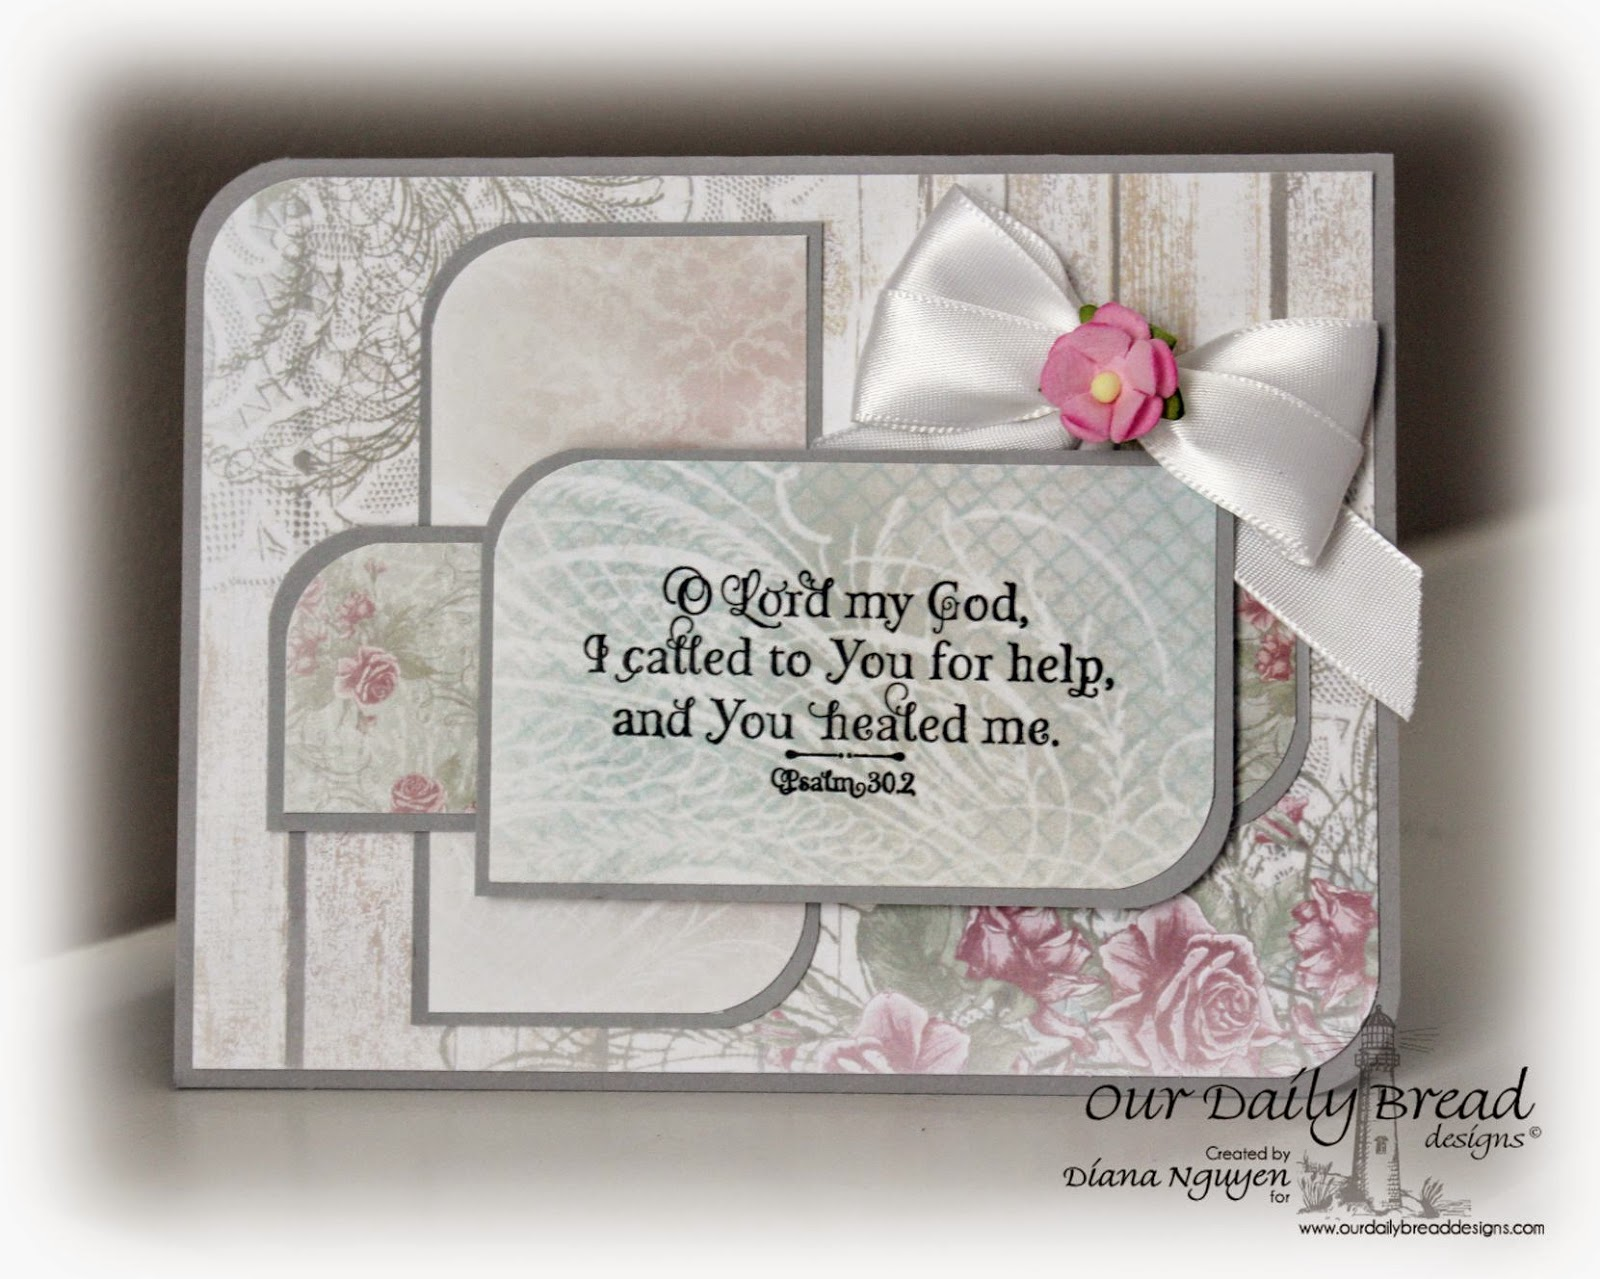 Our Daily Bread Designs, Shabby Rose Paper Collection, God Verses, Designed by Diana Nguyen